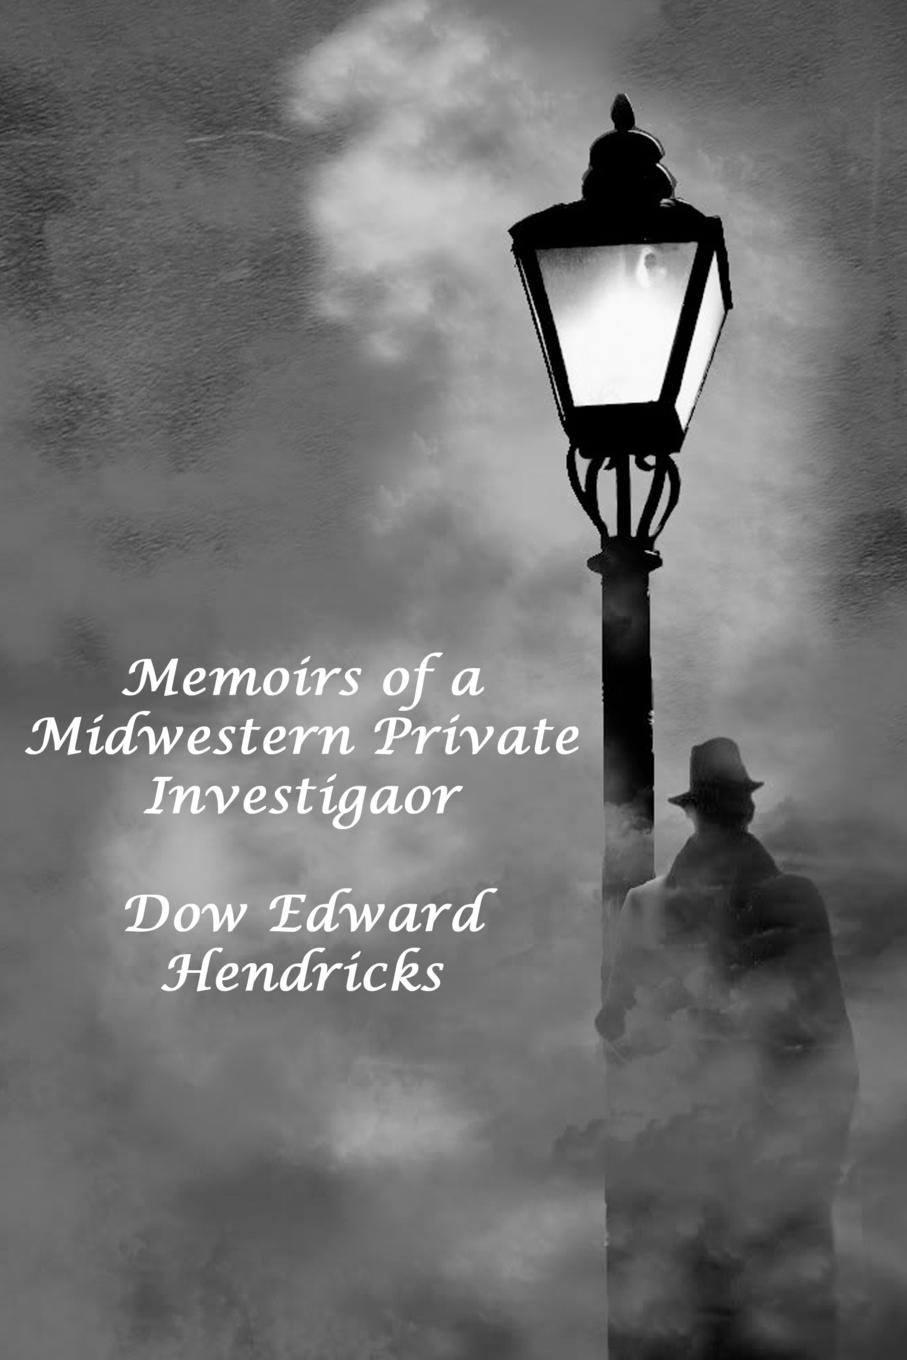 Dow Edward Hendricks Memoirs of a Midwestern Private Investiator jennifer keeler michelle jones private investigator